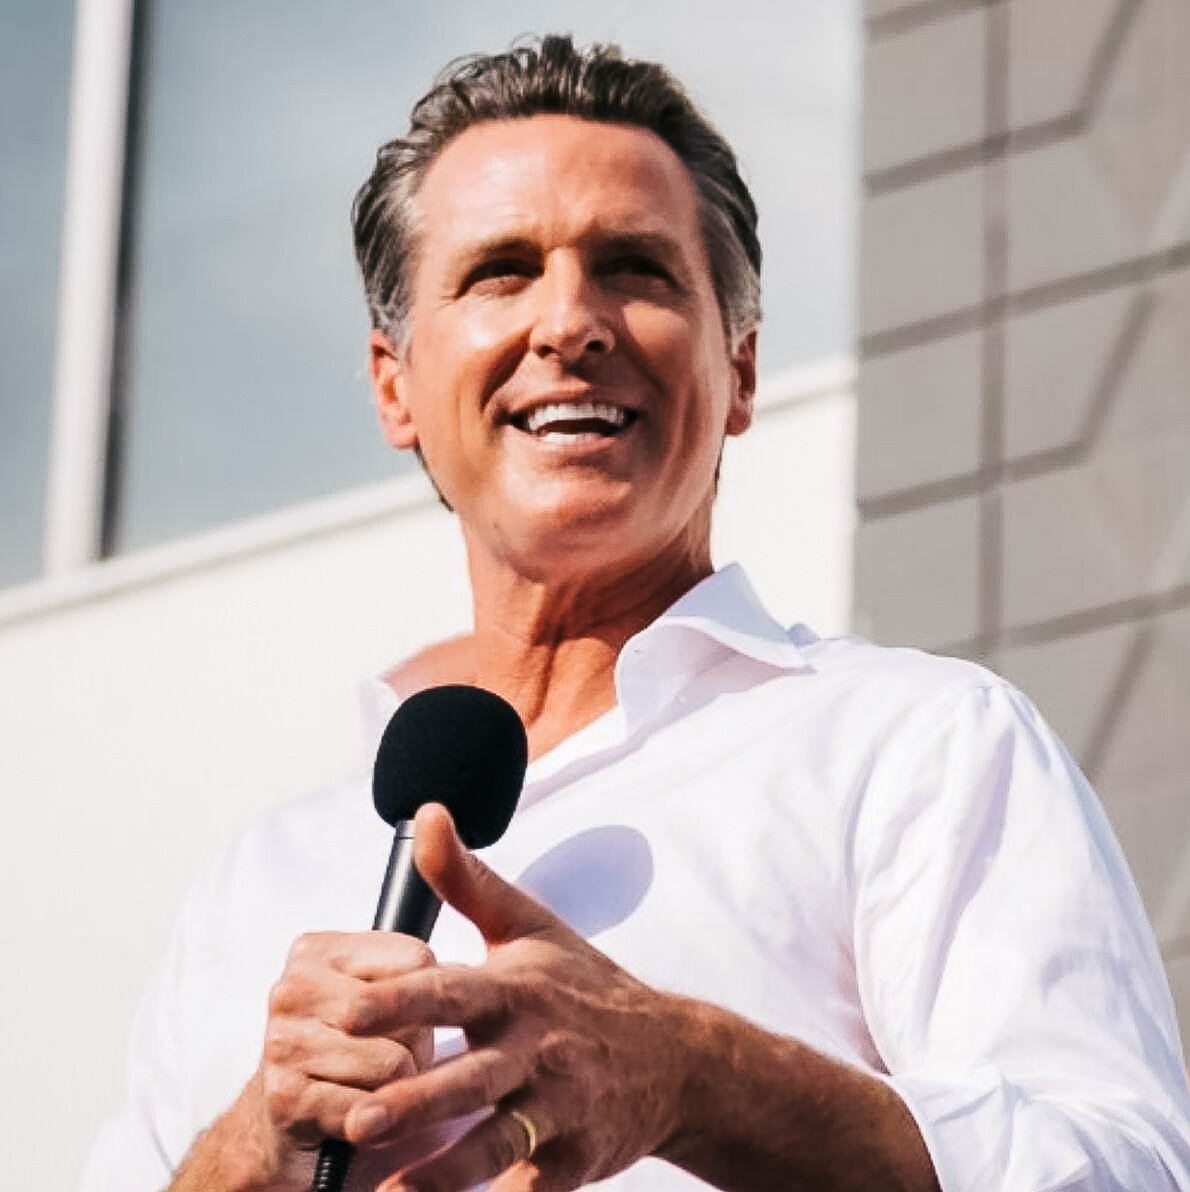 Newsom Needs to stop deflecting responsibility for California's homelessness crisis onto others